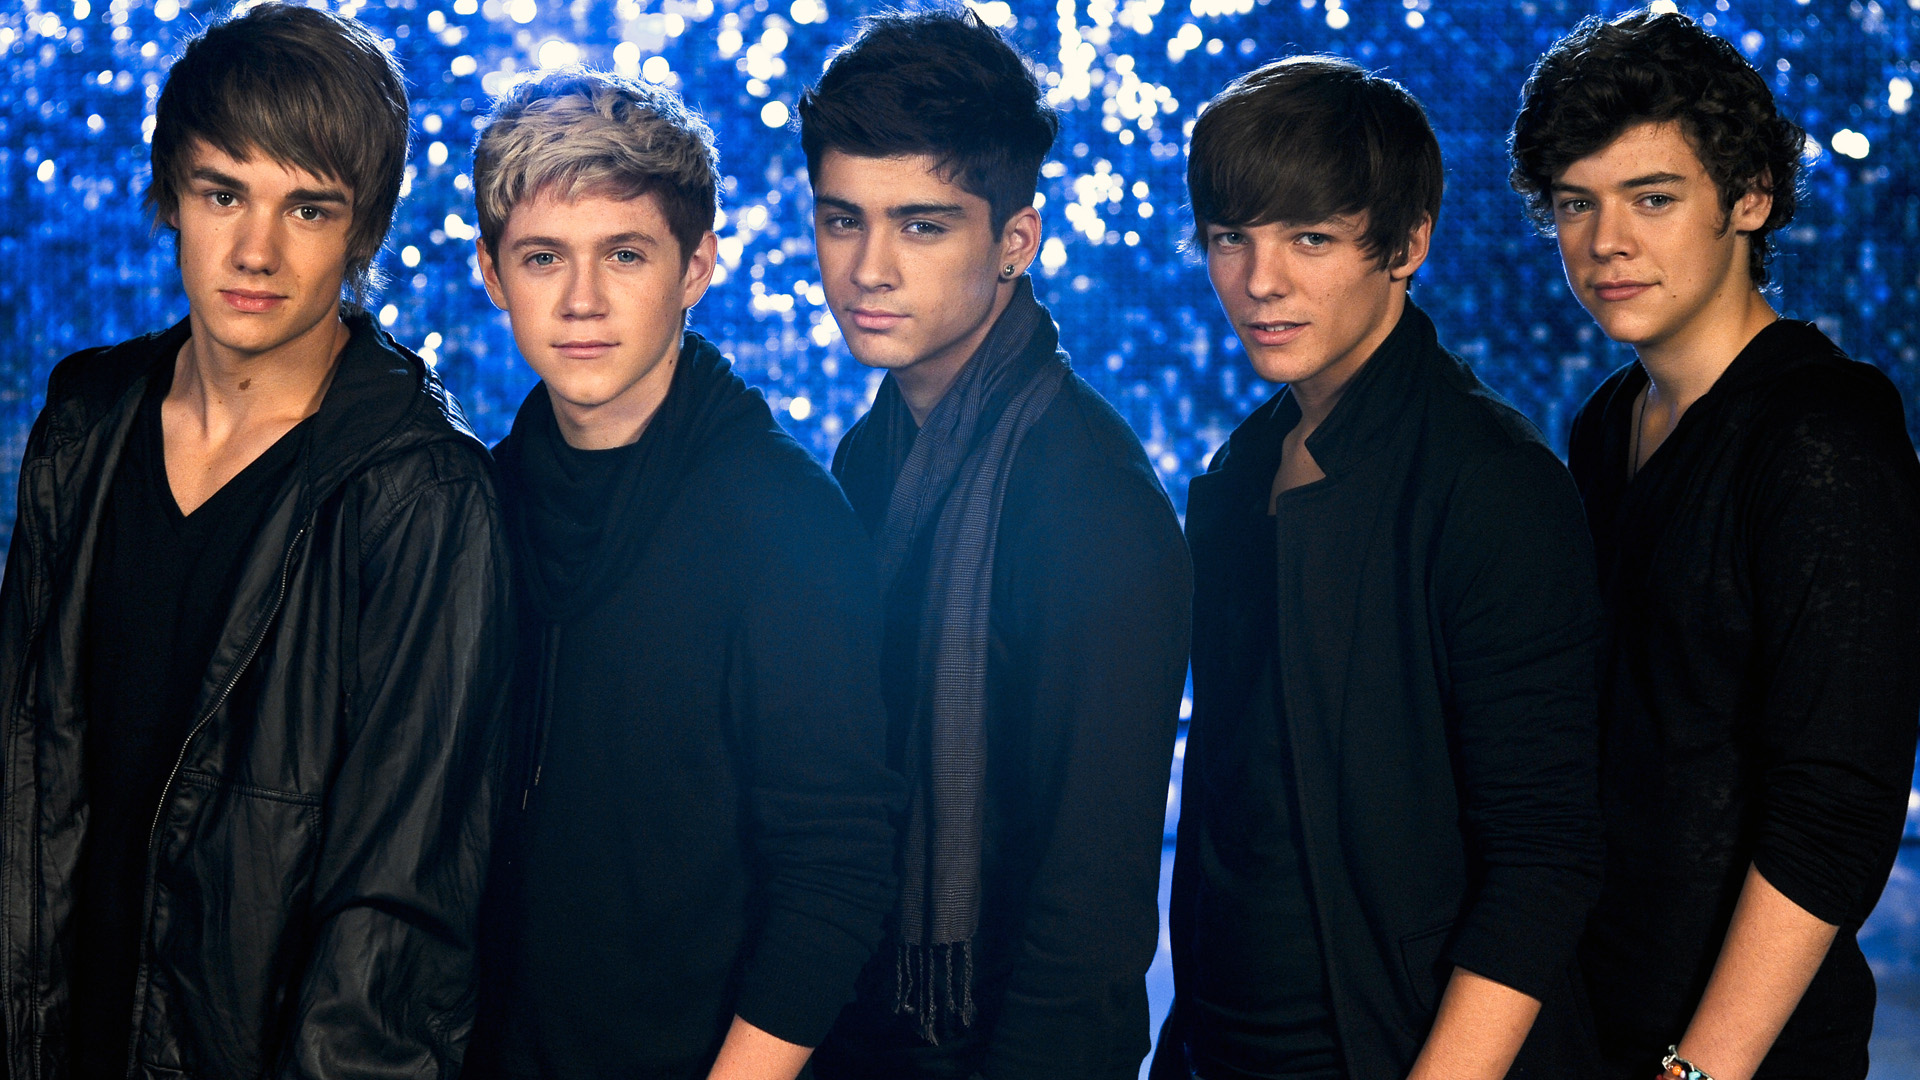 One of direction pictures